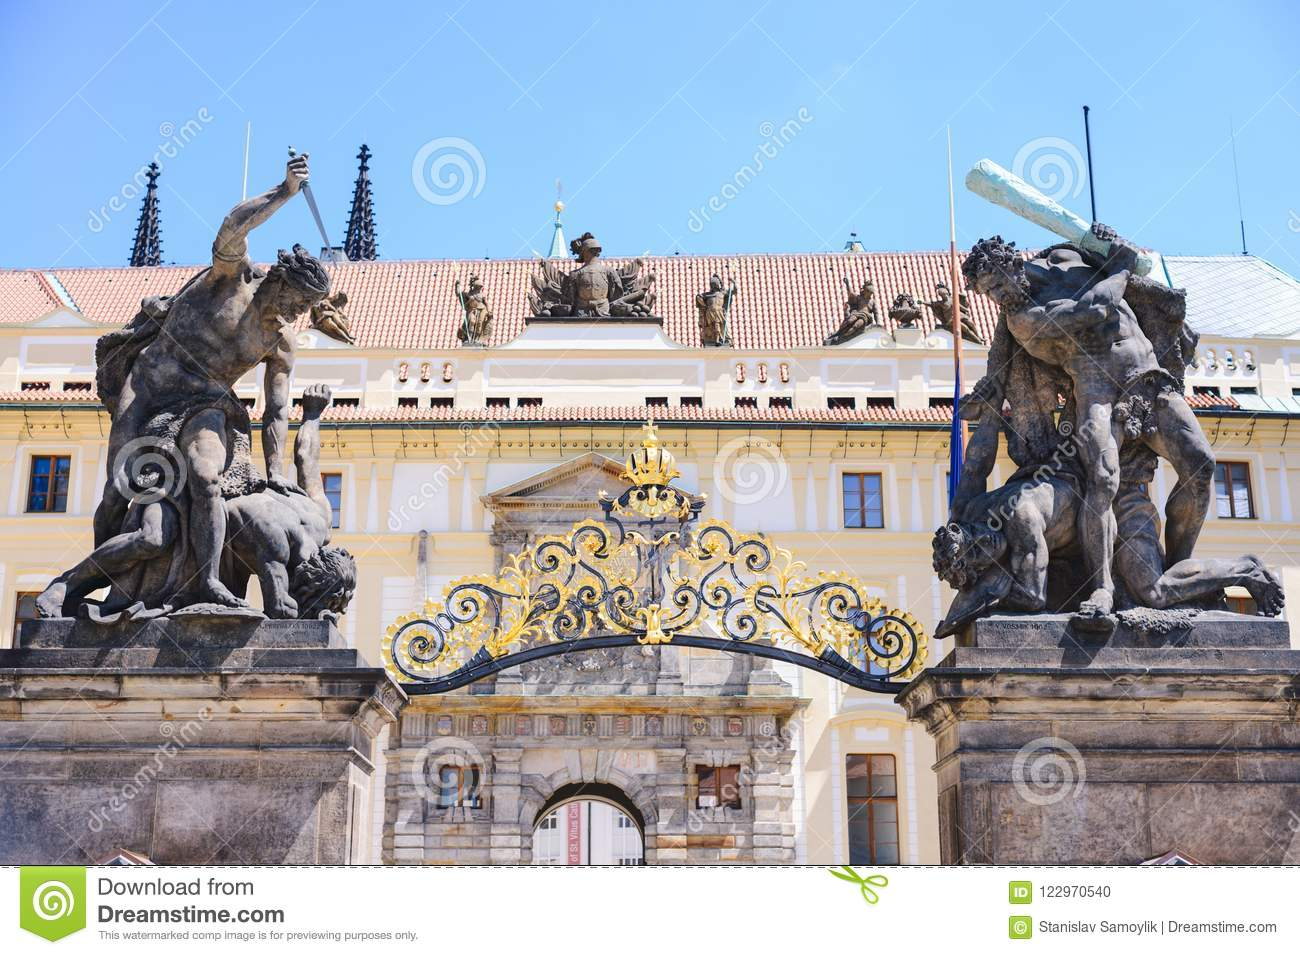 Fragment of the Prague castle Located in the Hradcany district is the official residence and office of the President of the Czech